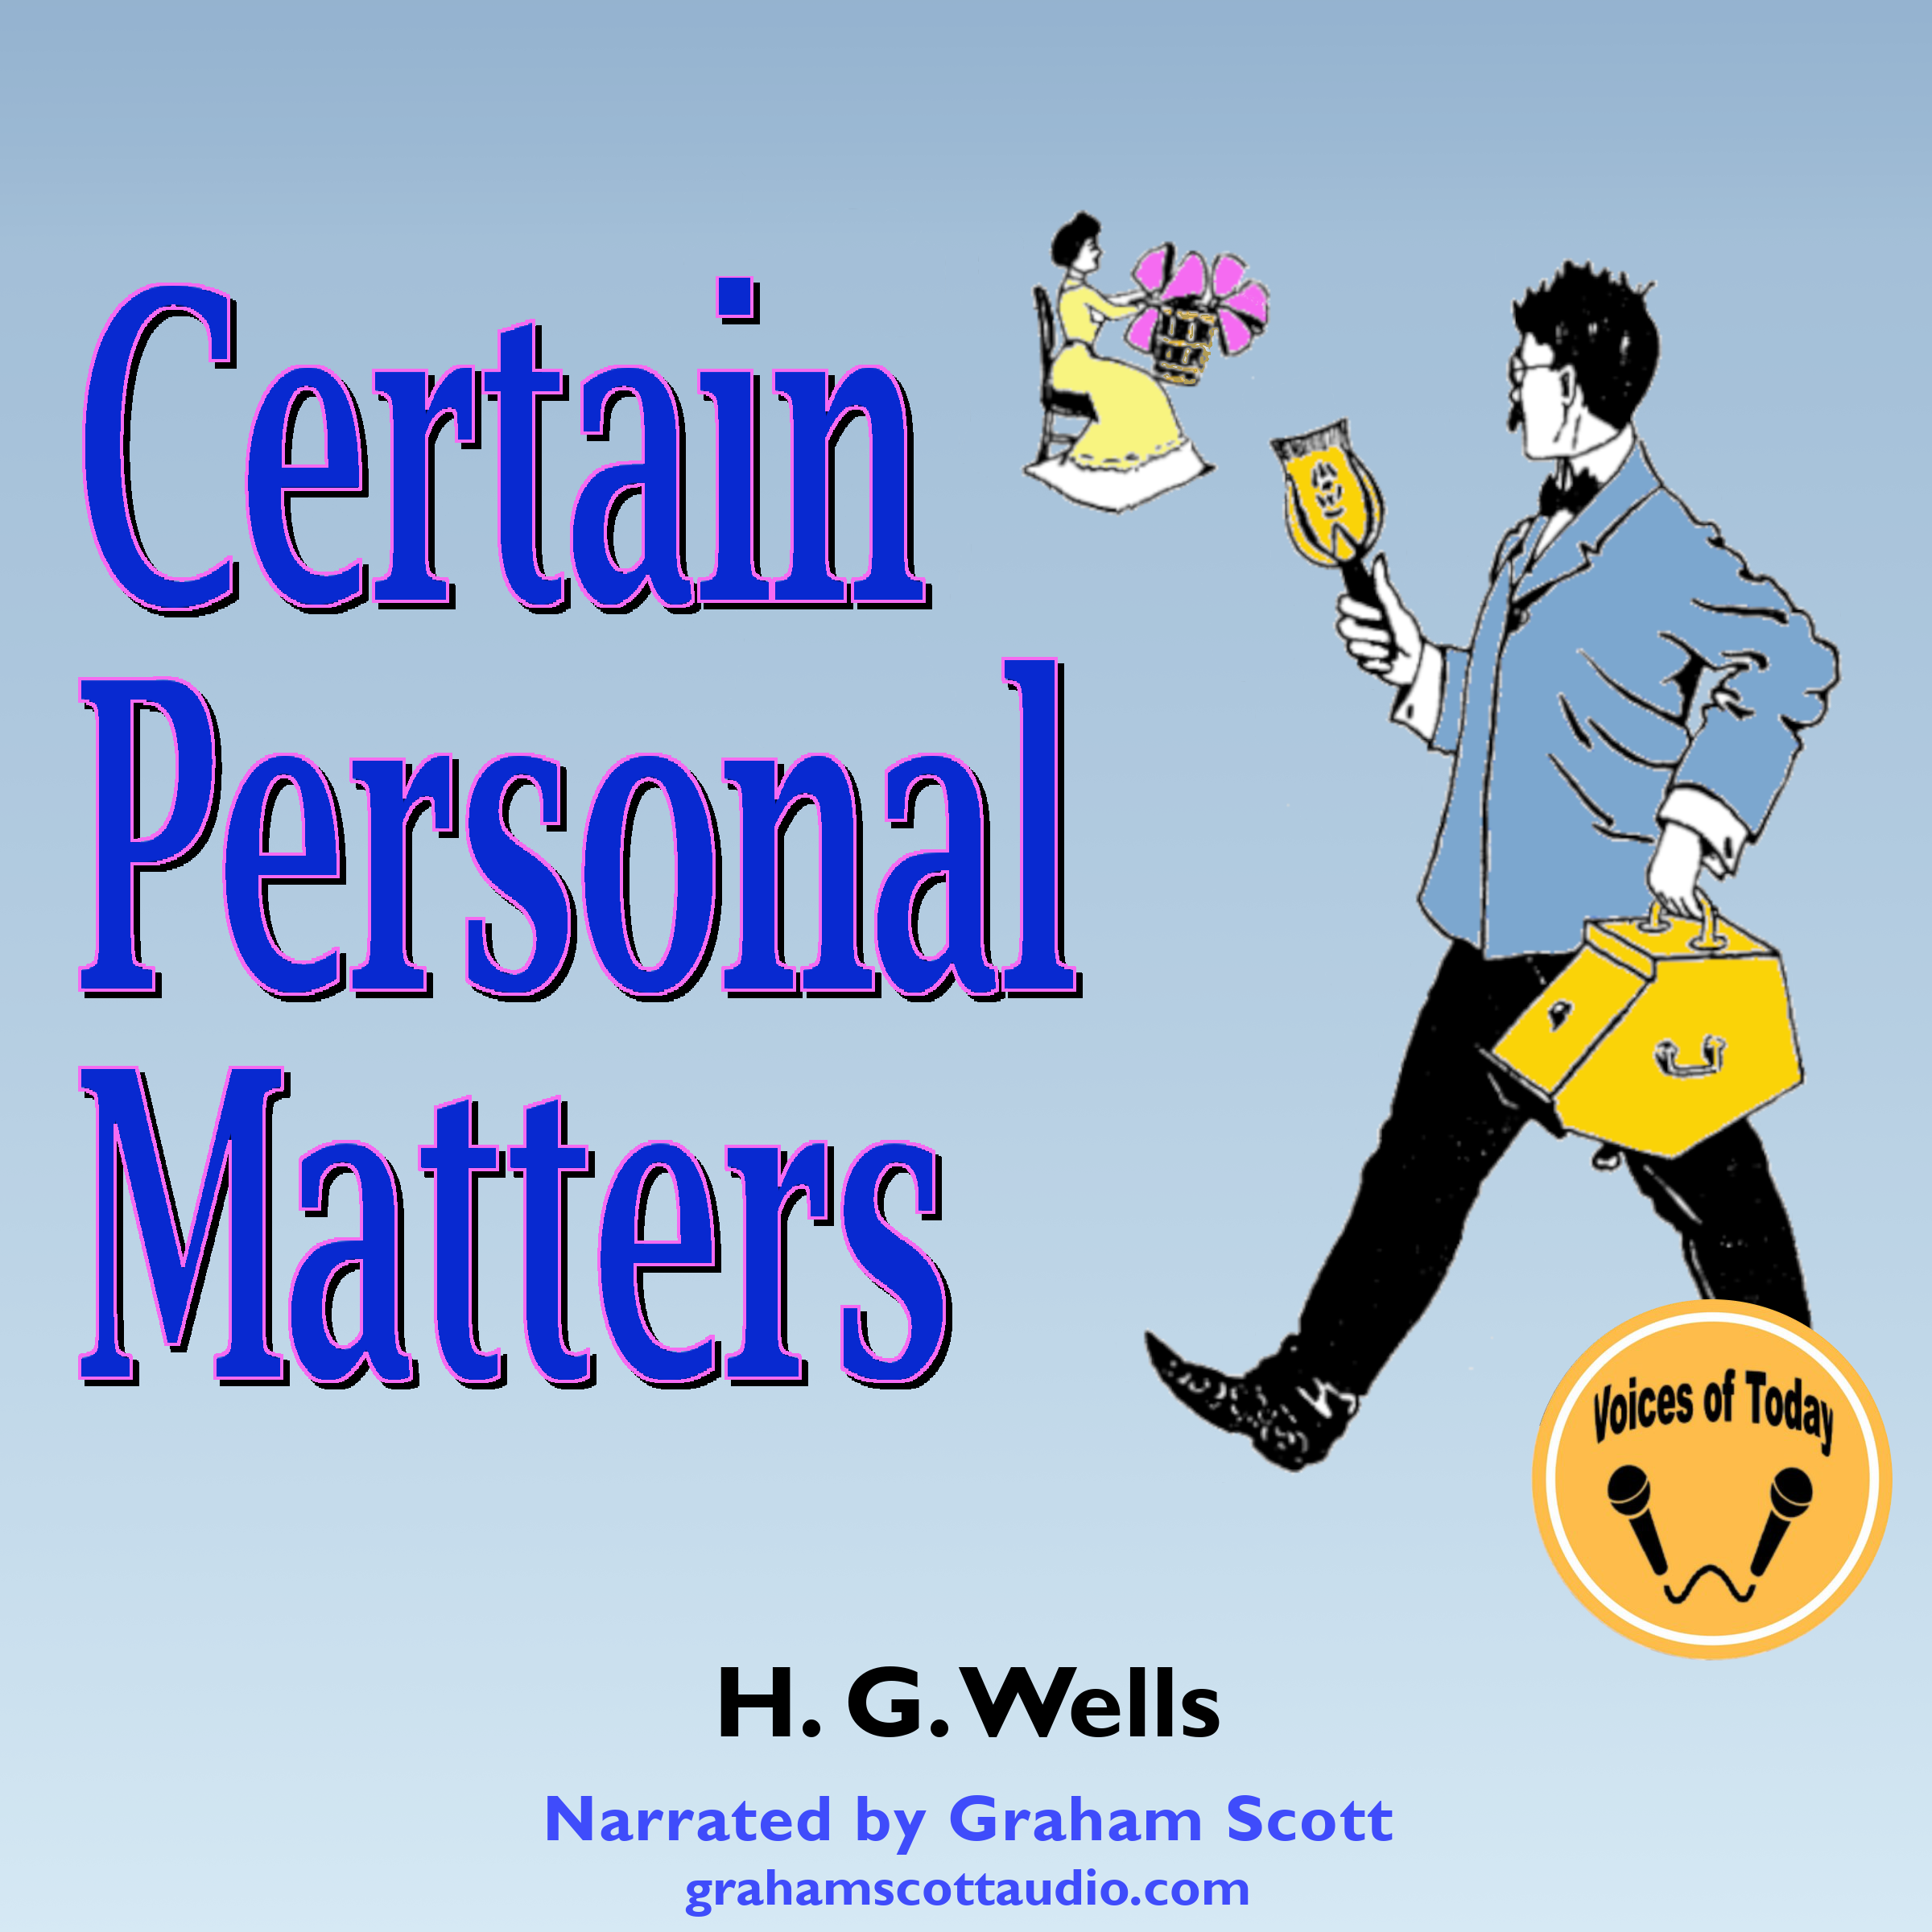 Certain Personal Matters